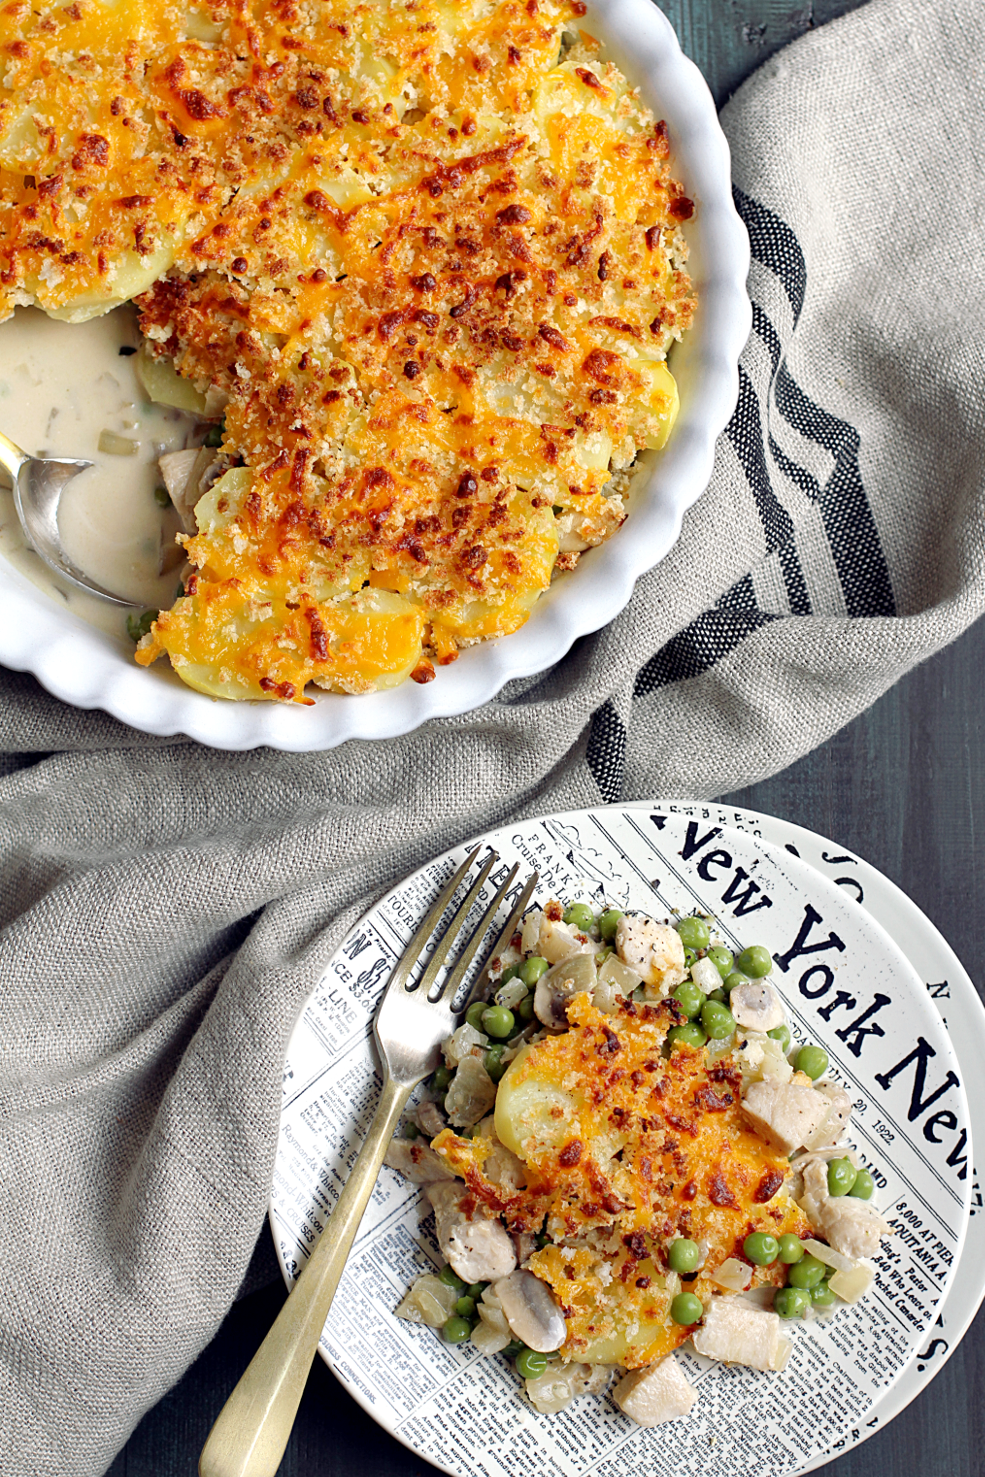 Image of potato-topped chicken pot pie from the top.